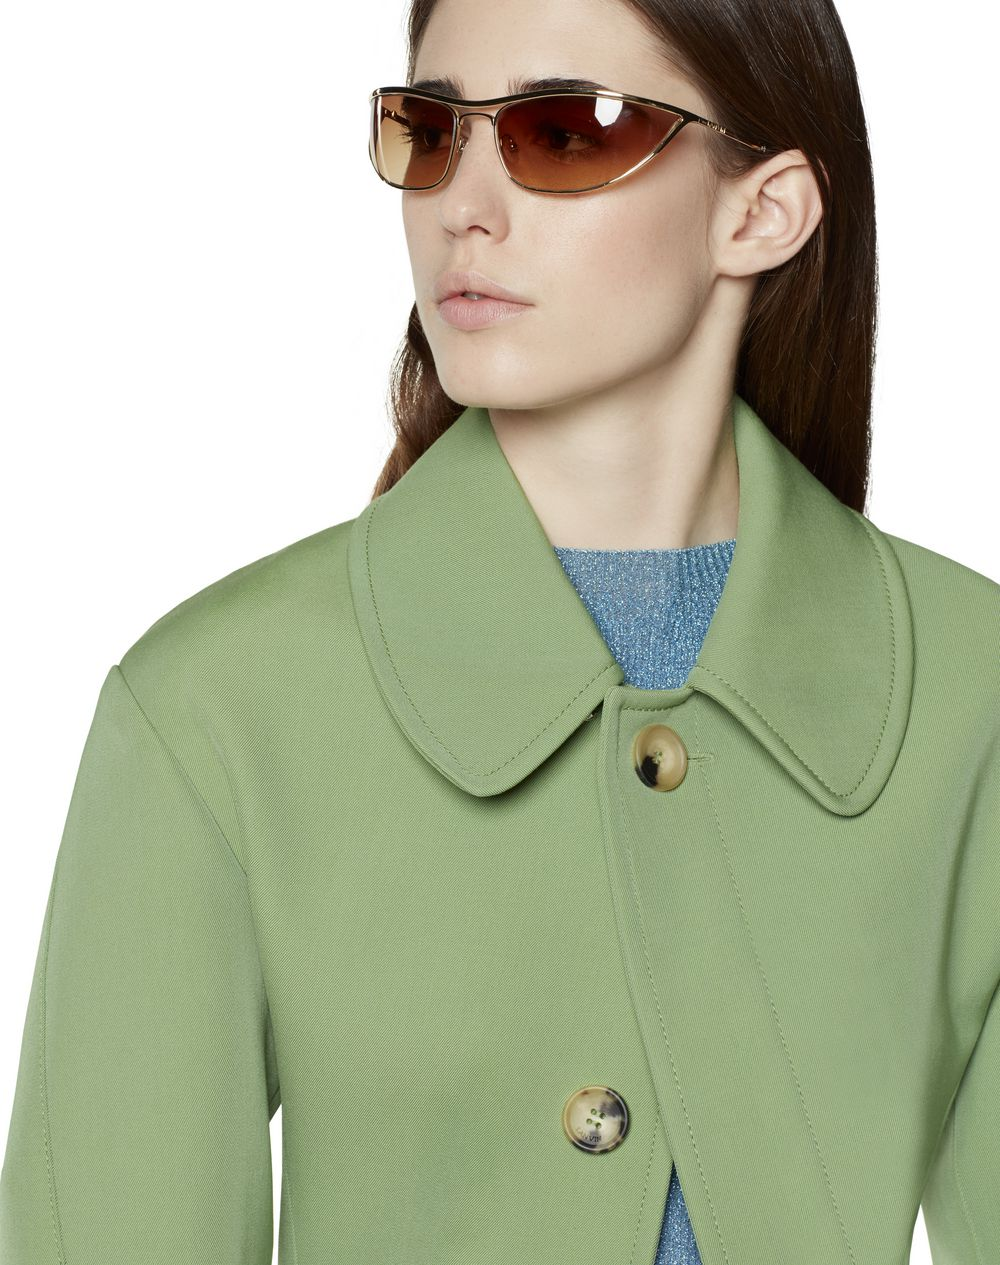 COAT WITH WOOL INSET - Lanvin